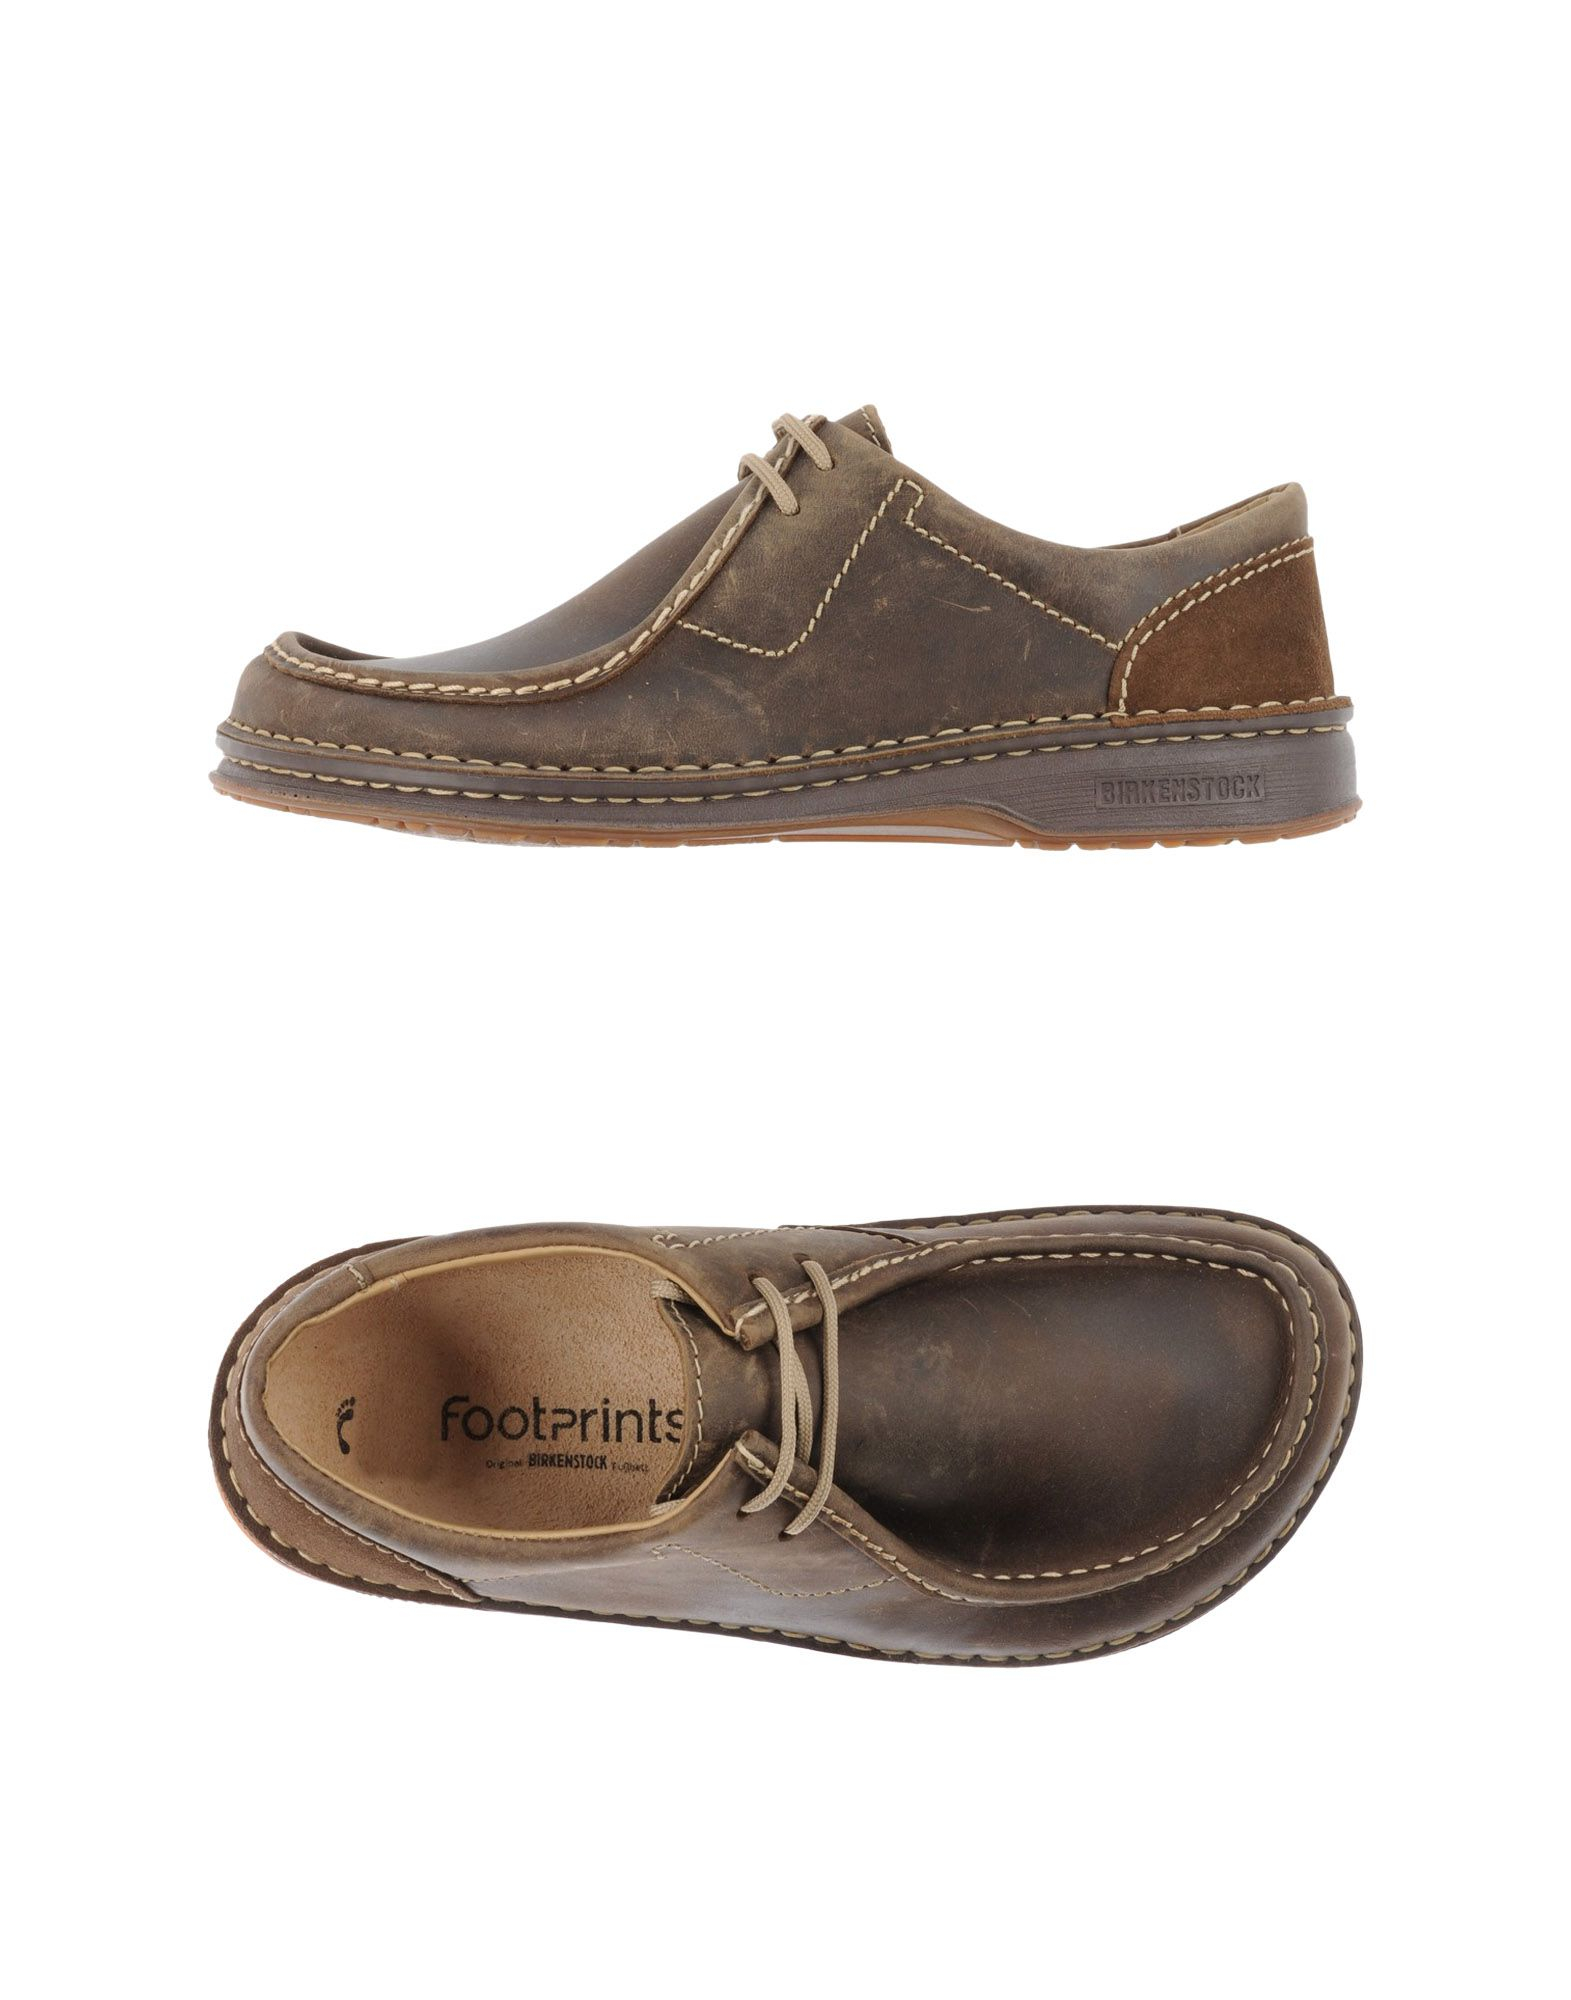 71bea0628137 Lyst - Birkenstock Lace-Up Shoes in Brown for Men